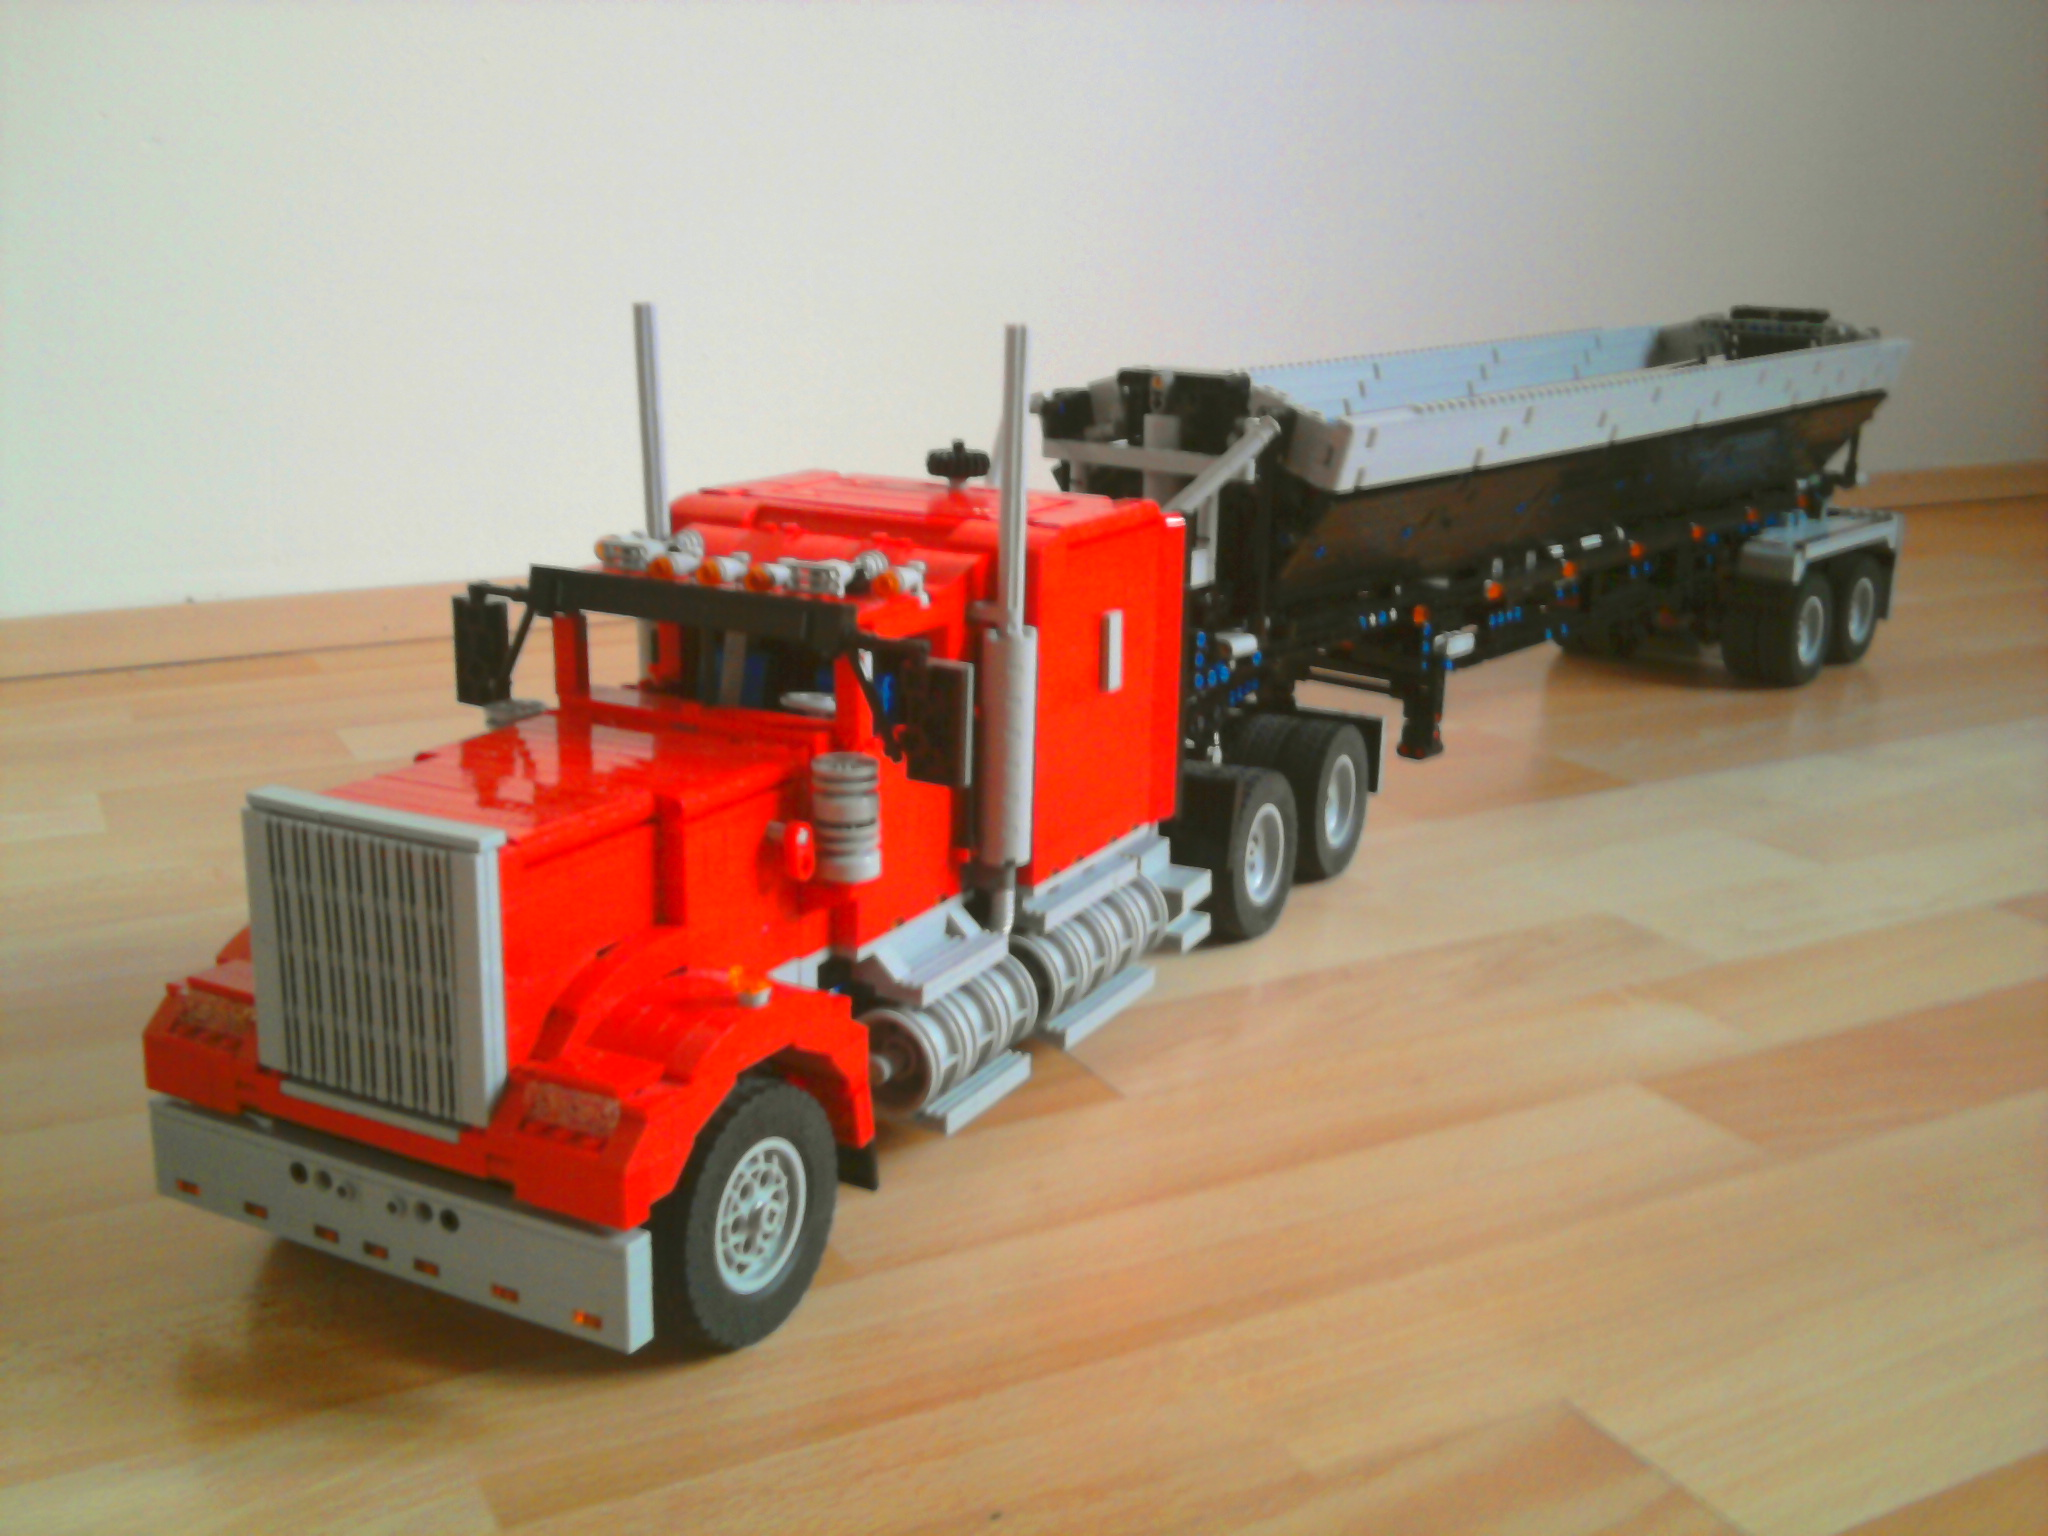 Custom gooseneck trailer together with Watch furthermore Imagesgkl Semi Truck Icon likewise roguetruckbody furthermore Rc4wd Armageddon 114 Dump Truck 8x8. on rc dump trucks with trailers